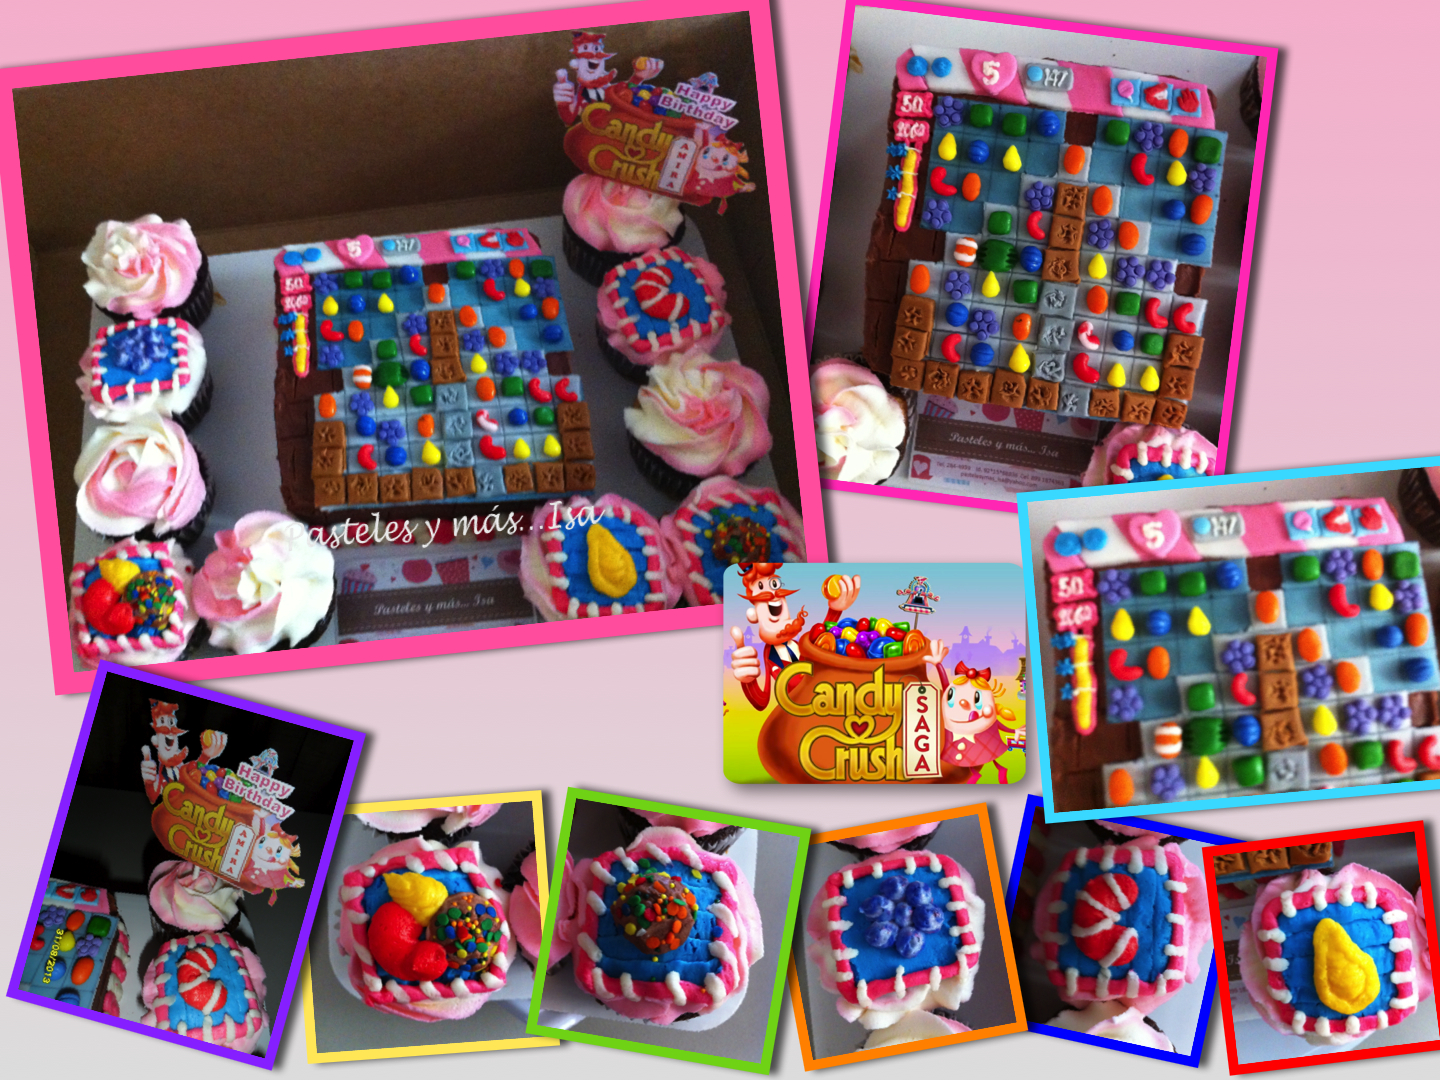 Pasteles y m s isa - 1600 candy crush ...